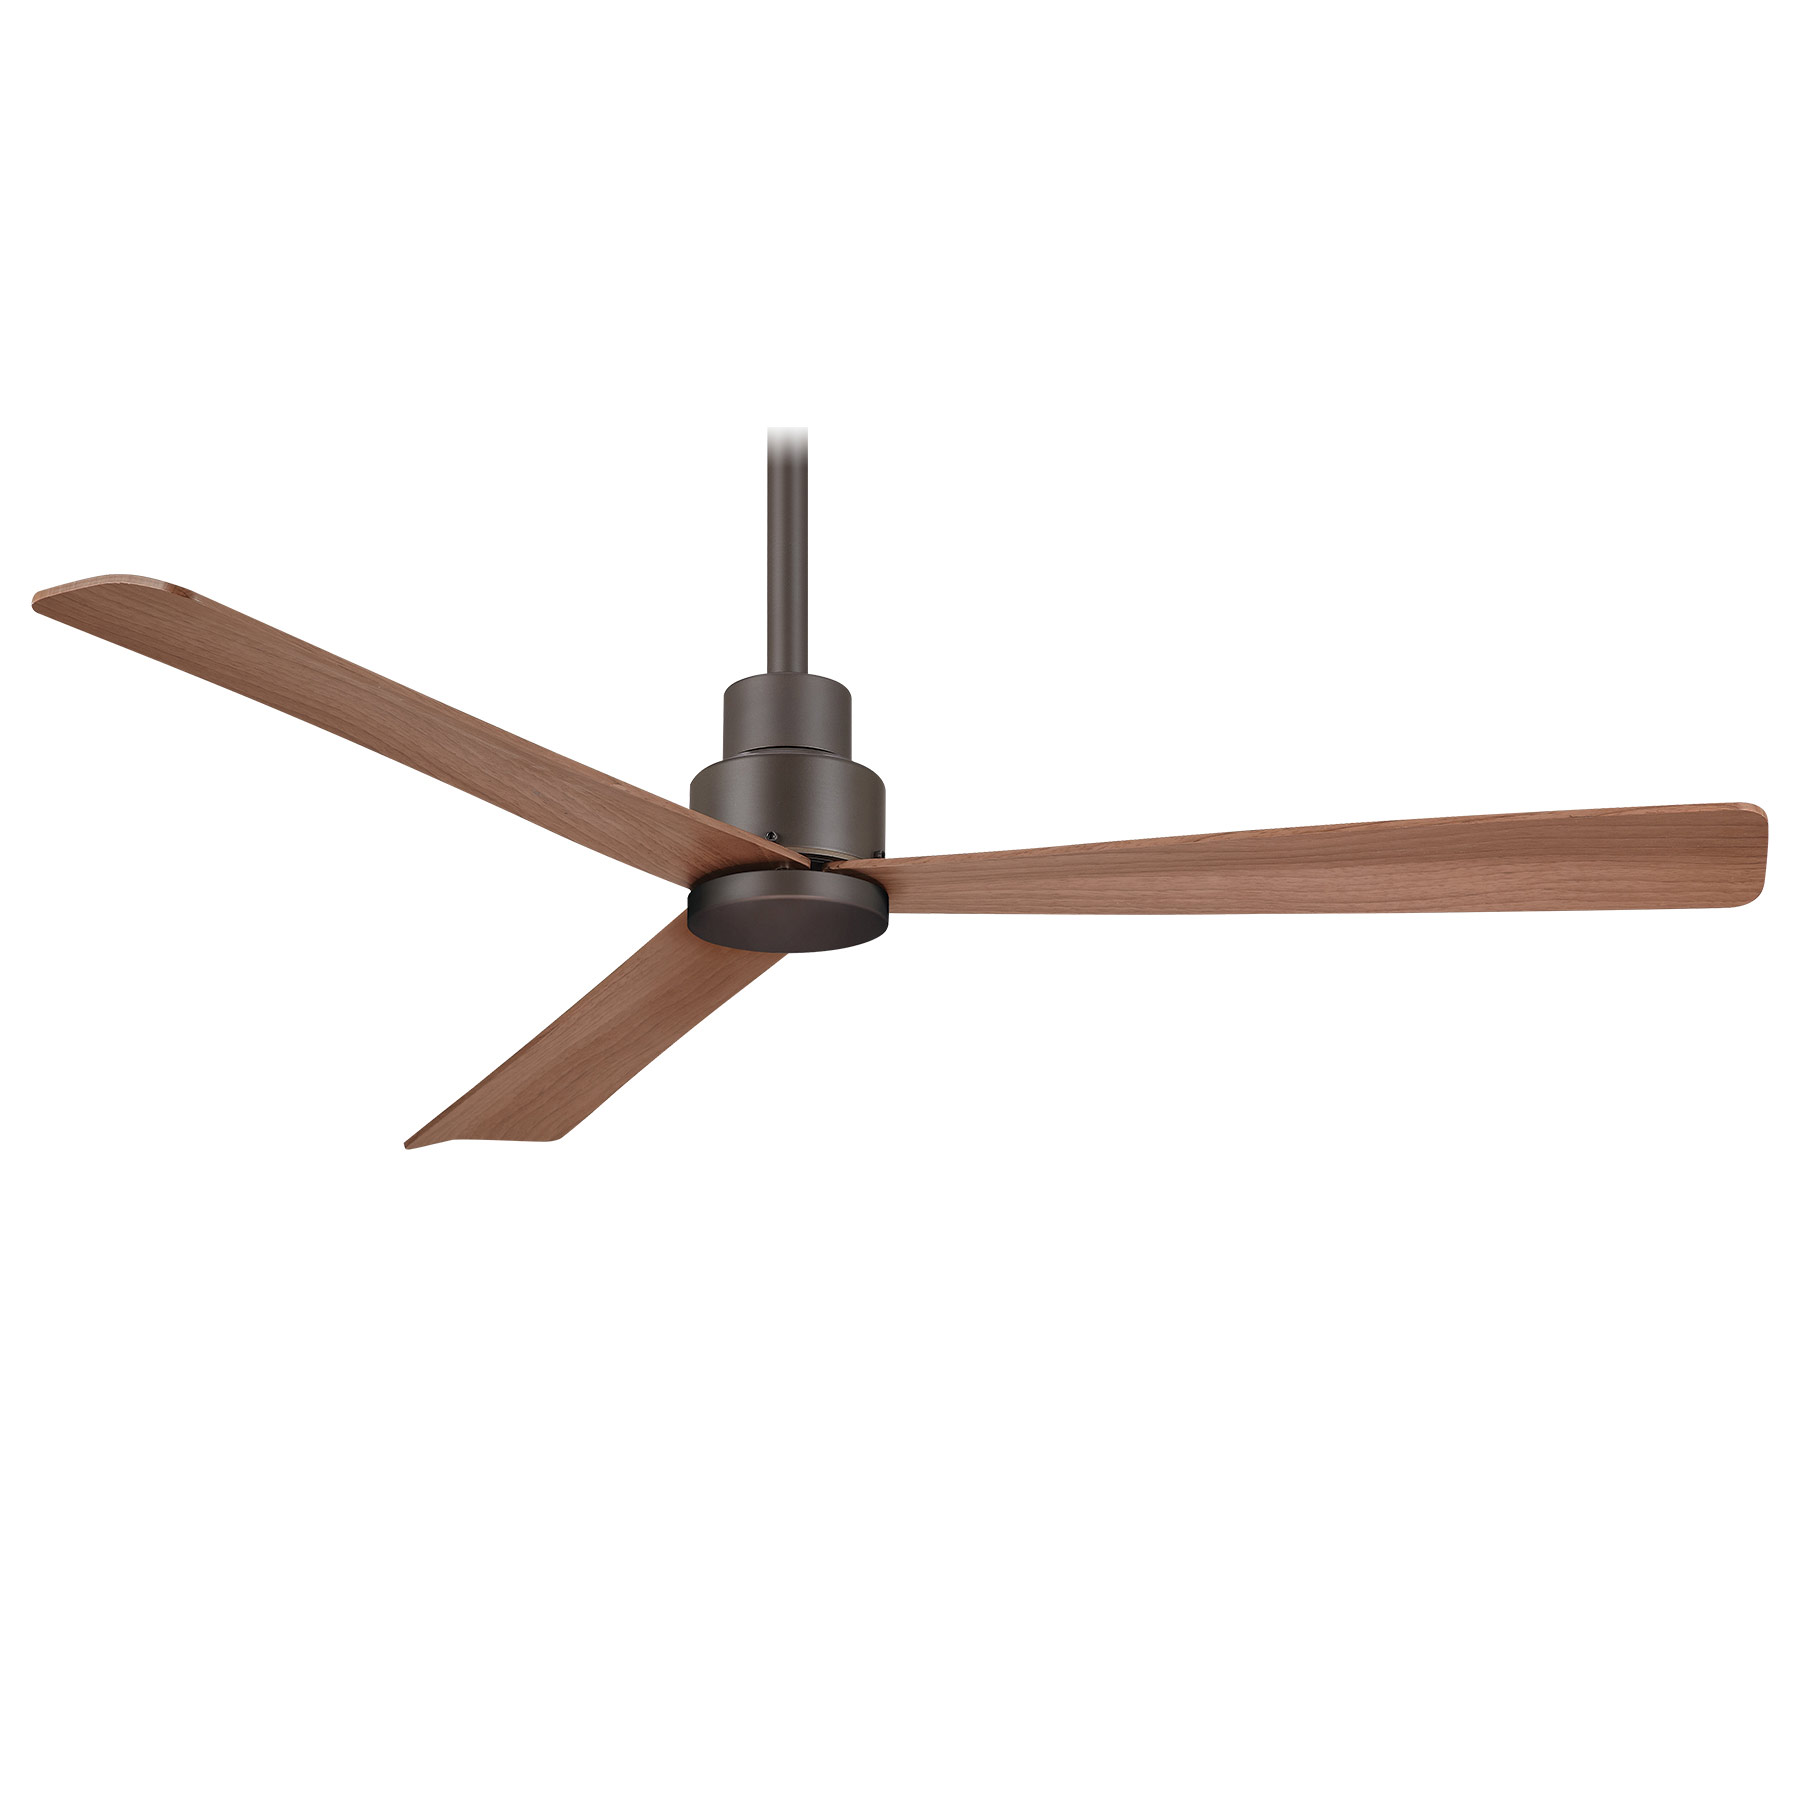 Simple outdoor ceiling fan 52 inch by minka aire f787 orb simple outdoor ceiling fan 52 inch download image aloadofball Images